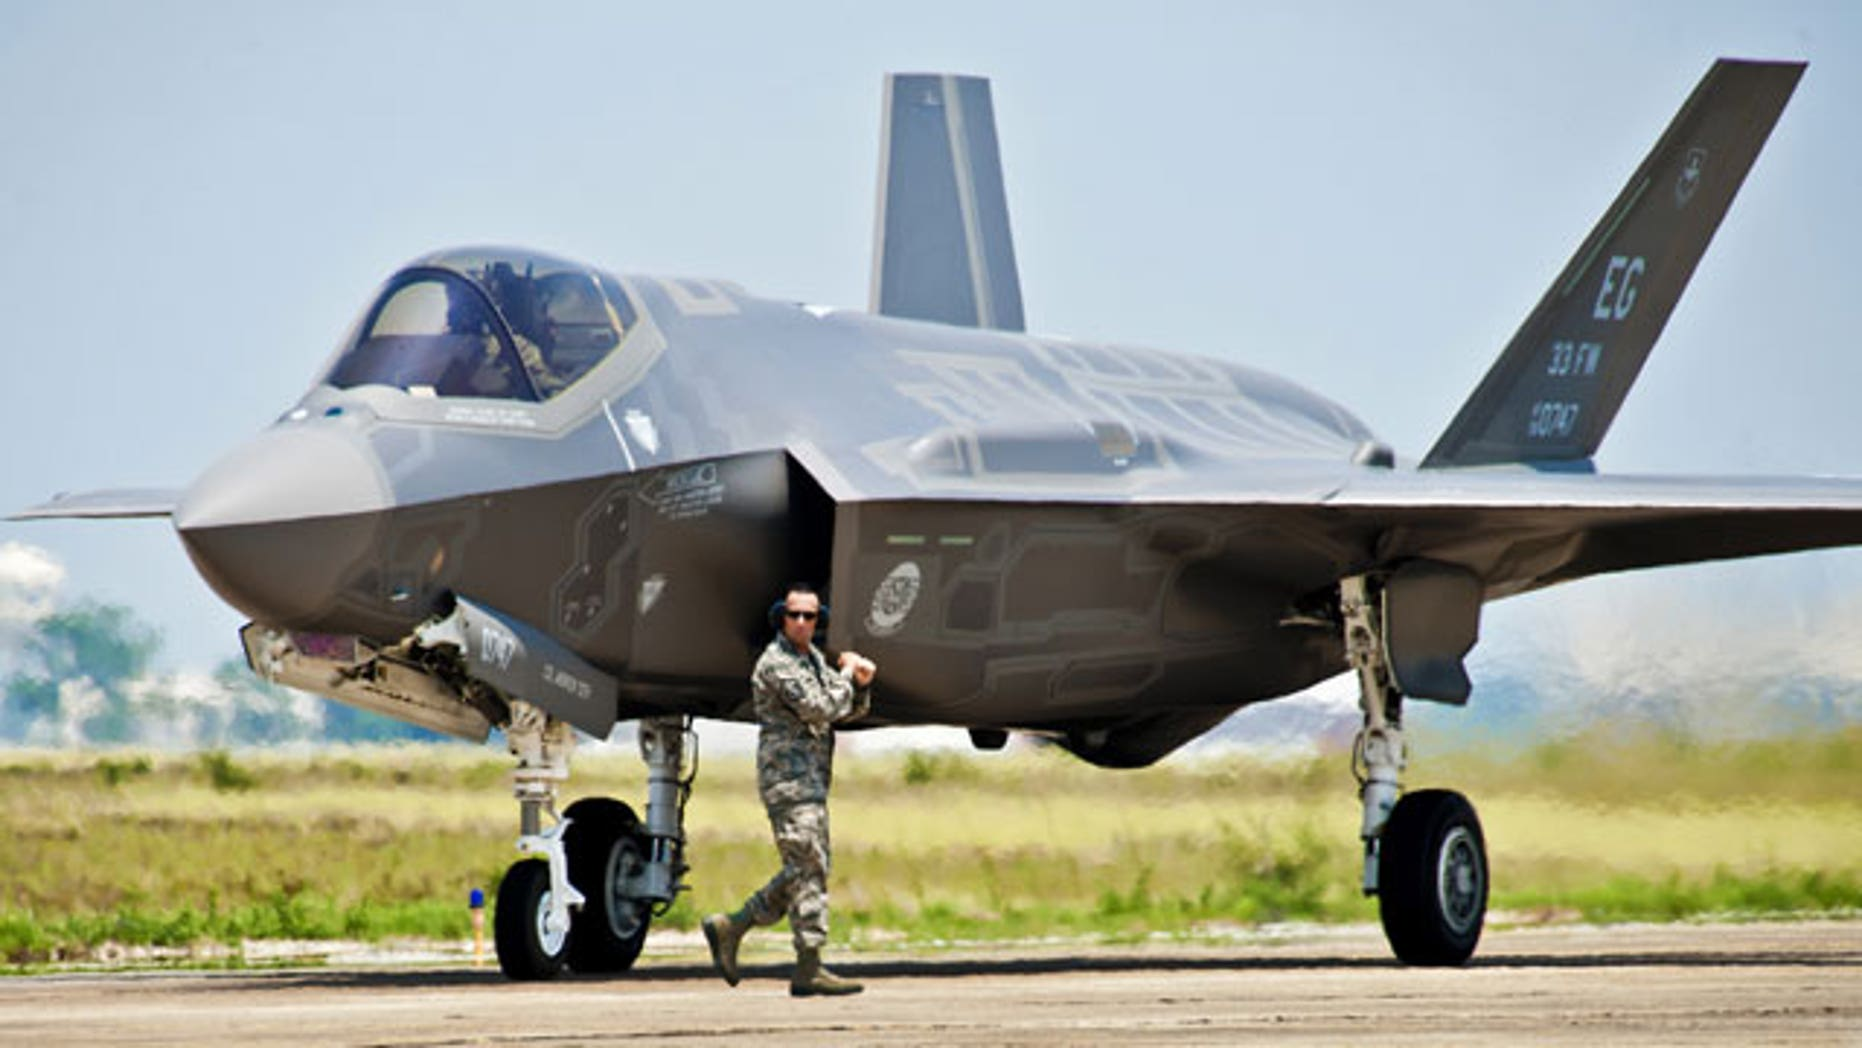 FILE: A 33rd Fighter Wing aircraft maintainer moves by the Department of Defense's newest aircraft, the U.S. Air Force F-35 Lightning II joint strike fighter (JSF), before giving the pilot an order to taxi the aircraft at Eglin Air Force Base, Fla.